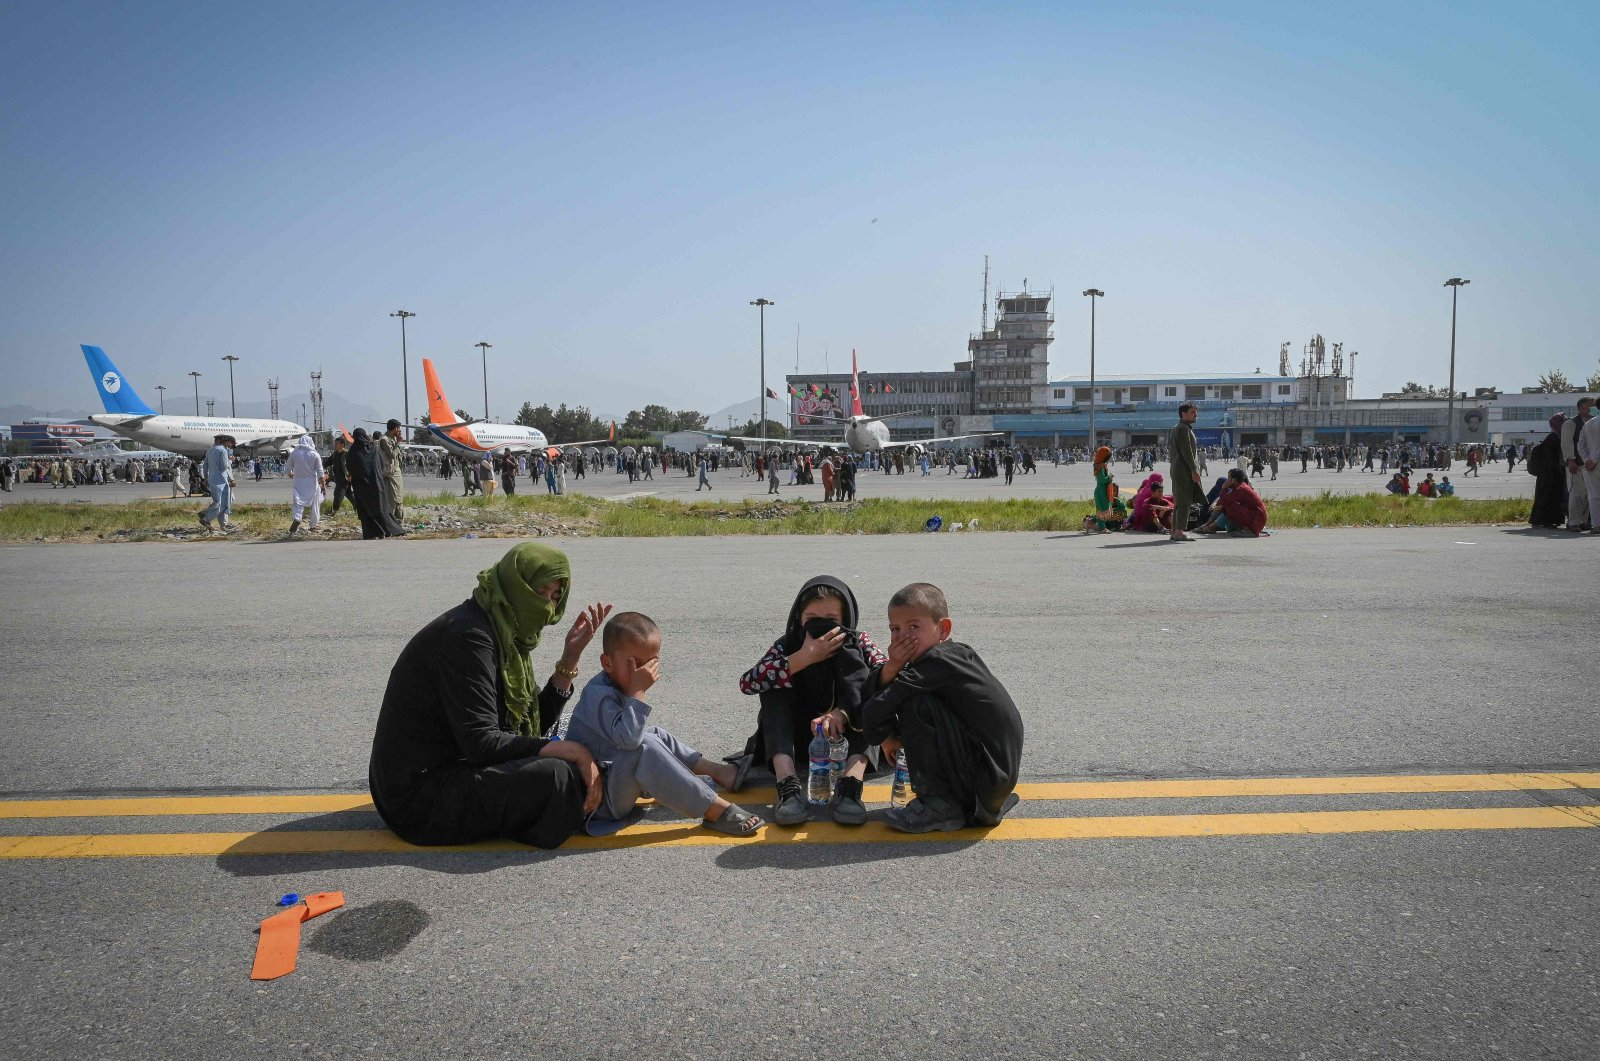 Afghan people sit along the tarmac as they wait to leave the Kabul Hamid Karzai International Airport in Kabul, Afghanistan on Aug. 16, 2021. (AFP Photo)